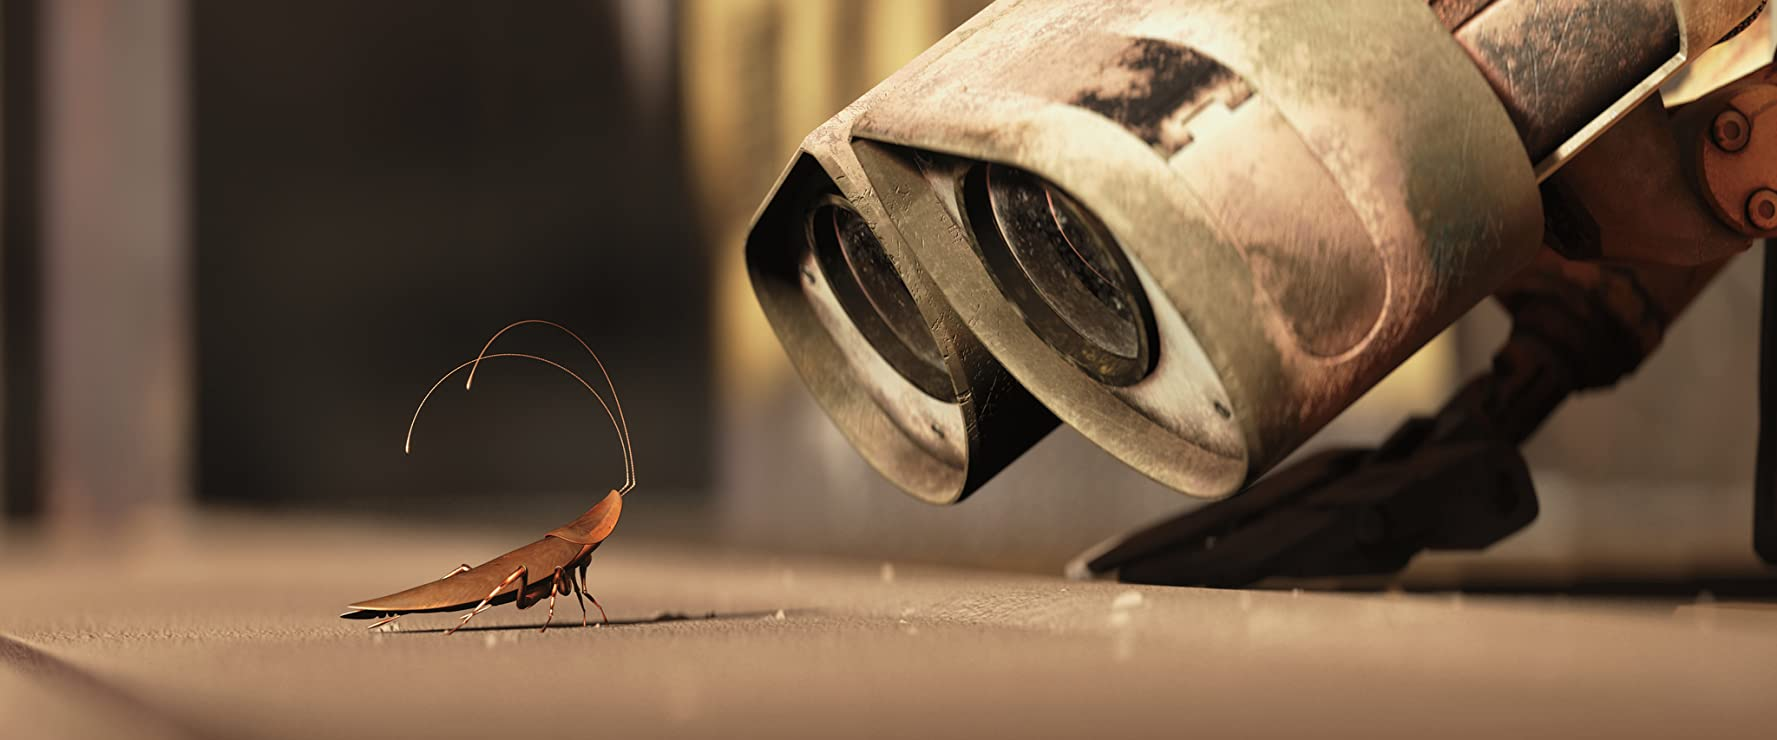 Ben Burtt in WALL·E (2008)